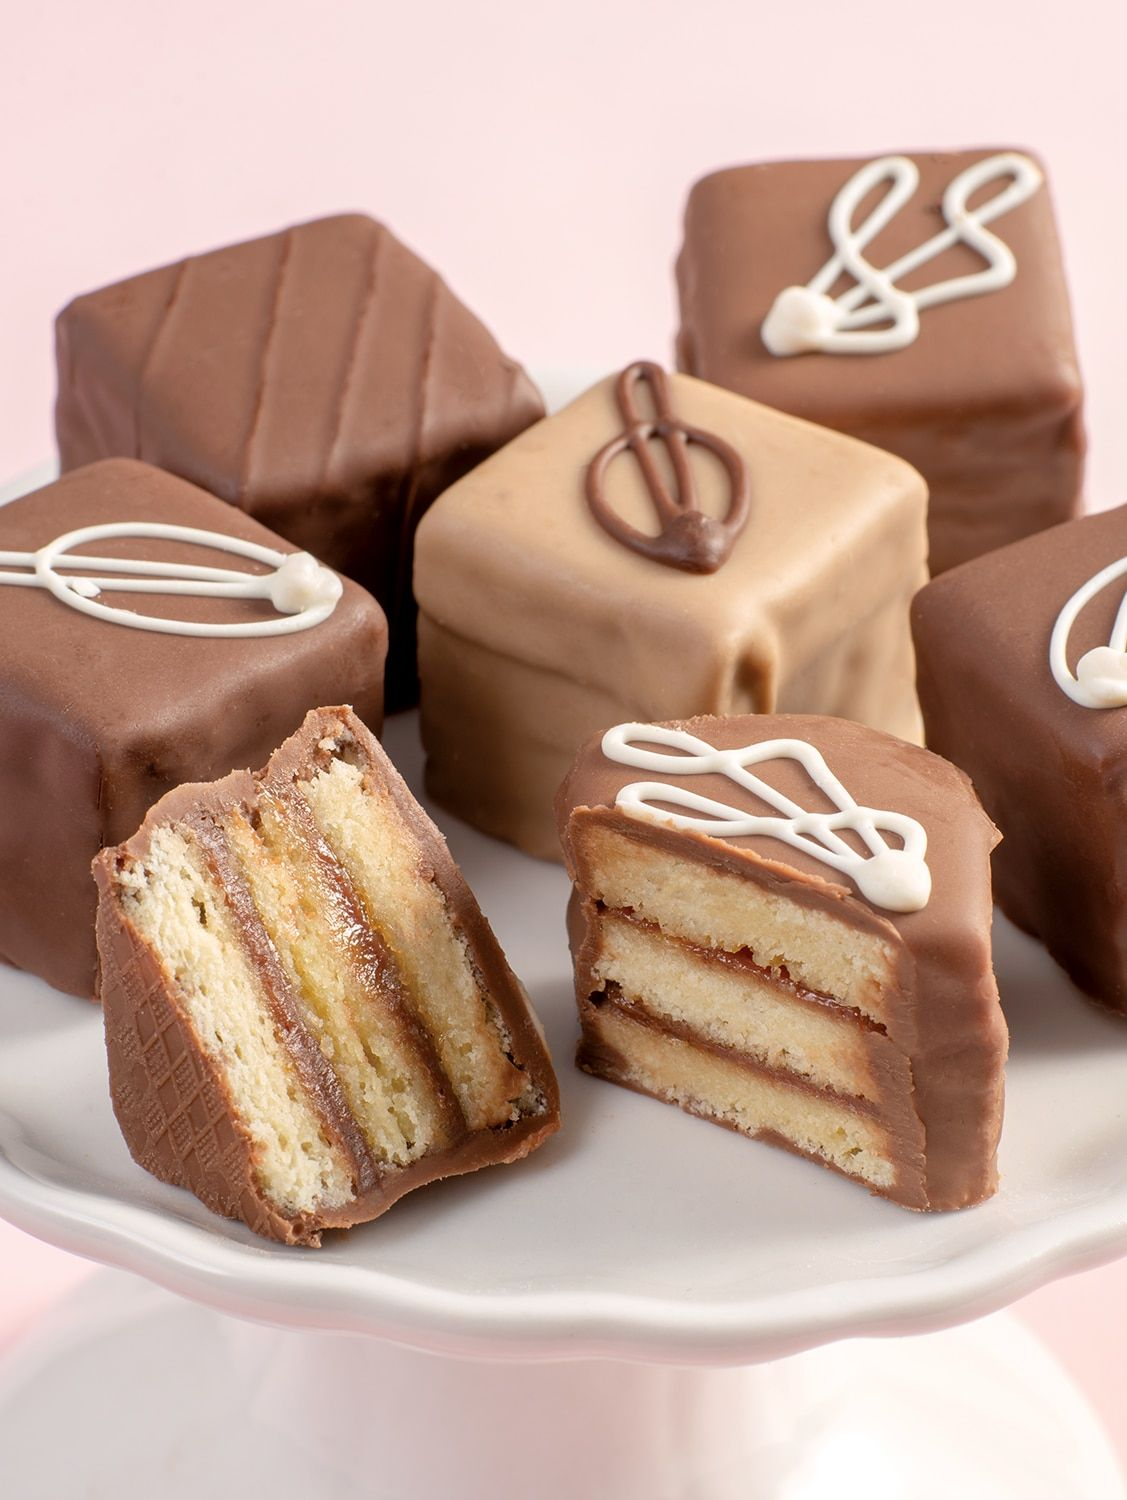 These mini multi-layered cakes are a chocoholic's dream come true! These pretty multi-layered cakes are made using only the finest ingredients to ensure they're always rich, moist, and satisfying. Each box includes 12 petits fours in 4 varieties: butter cake filled with espresso cream, butter cake filled with triple truffle cream, butter cake filled with milk chocolate cream, and butter cake filled with raspberry truffle cream. Each cake is drenched in rich milk or dark chocolate. Rich butter ca